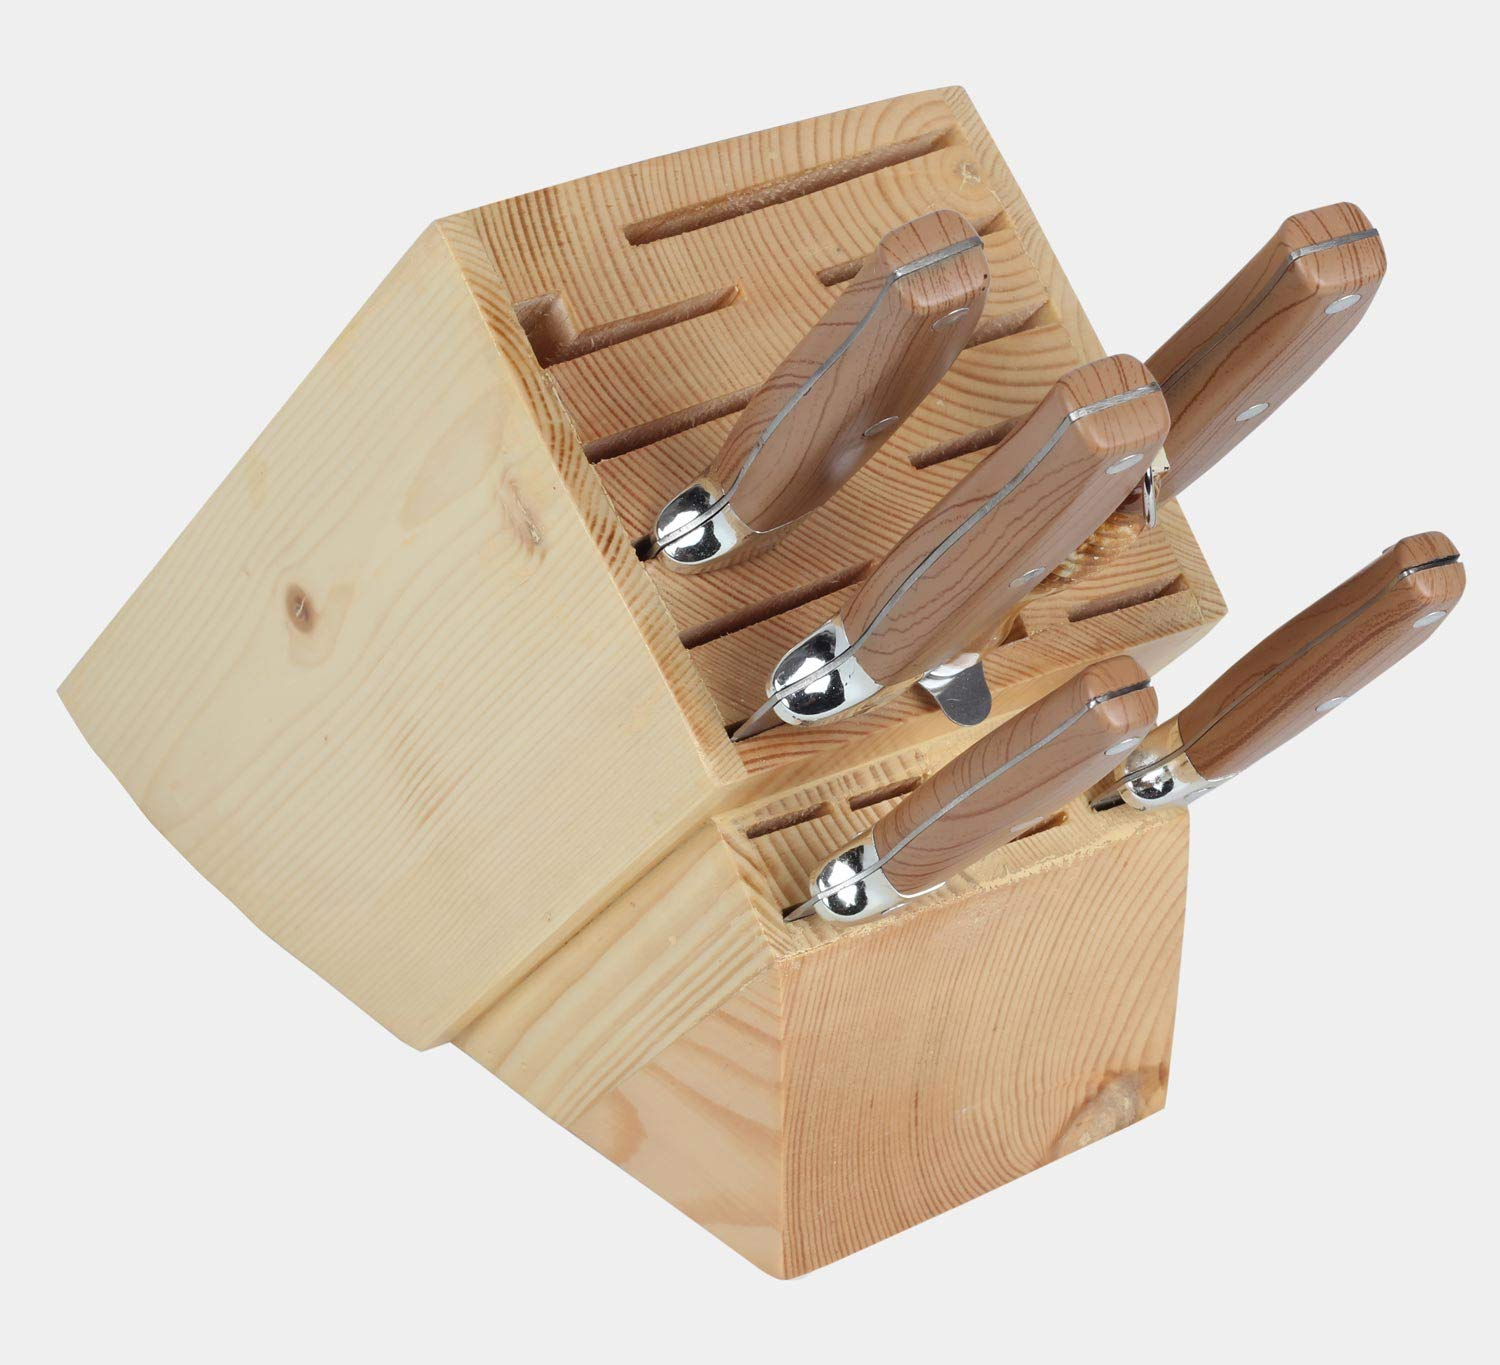 20 Slot Knife Holder Rack - Kitchen Knife Storage Wood Stand Organizer - Universal Knife Block Without Knives by AX Fashions (Image #3)